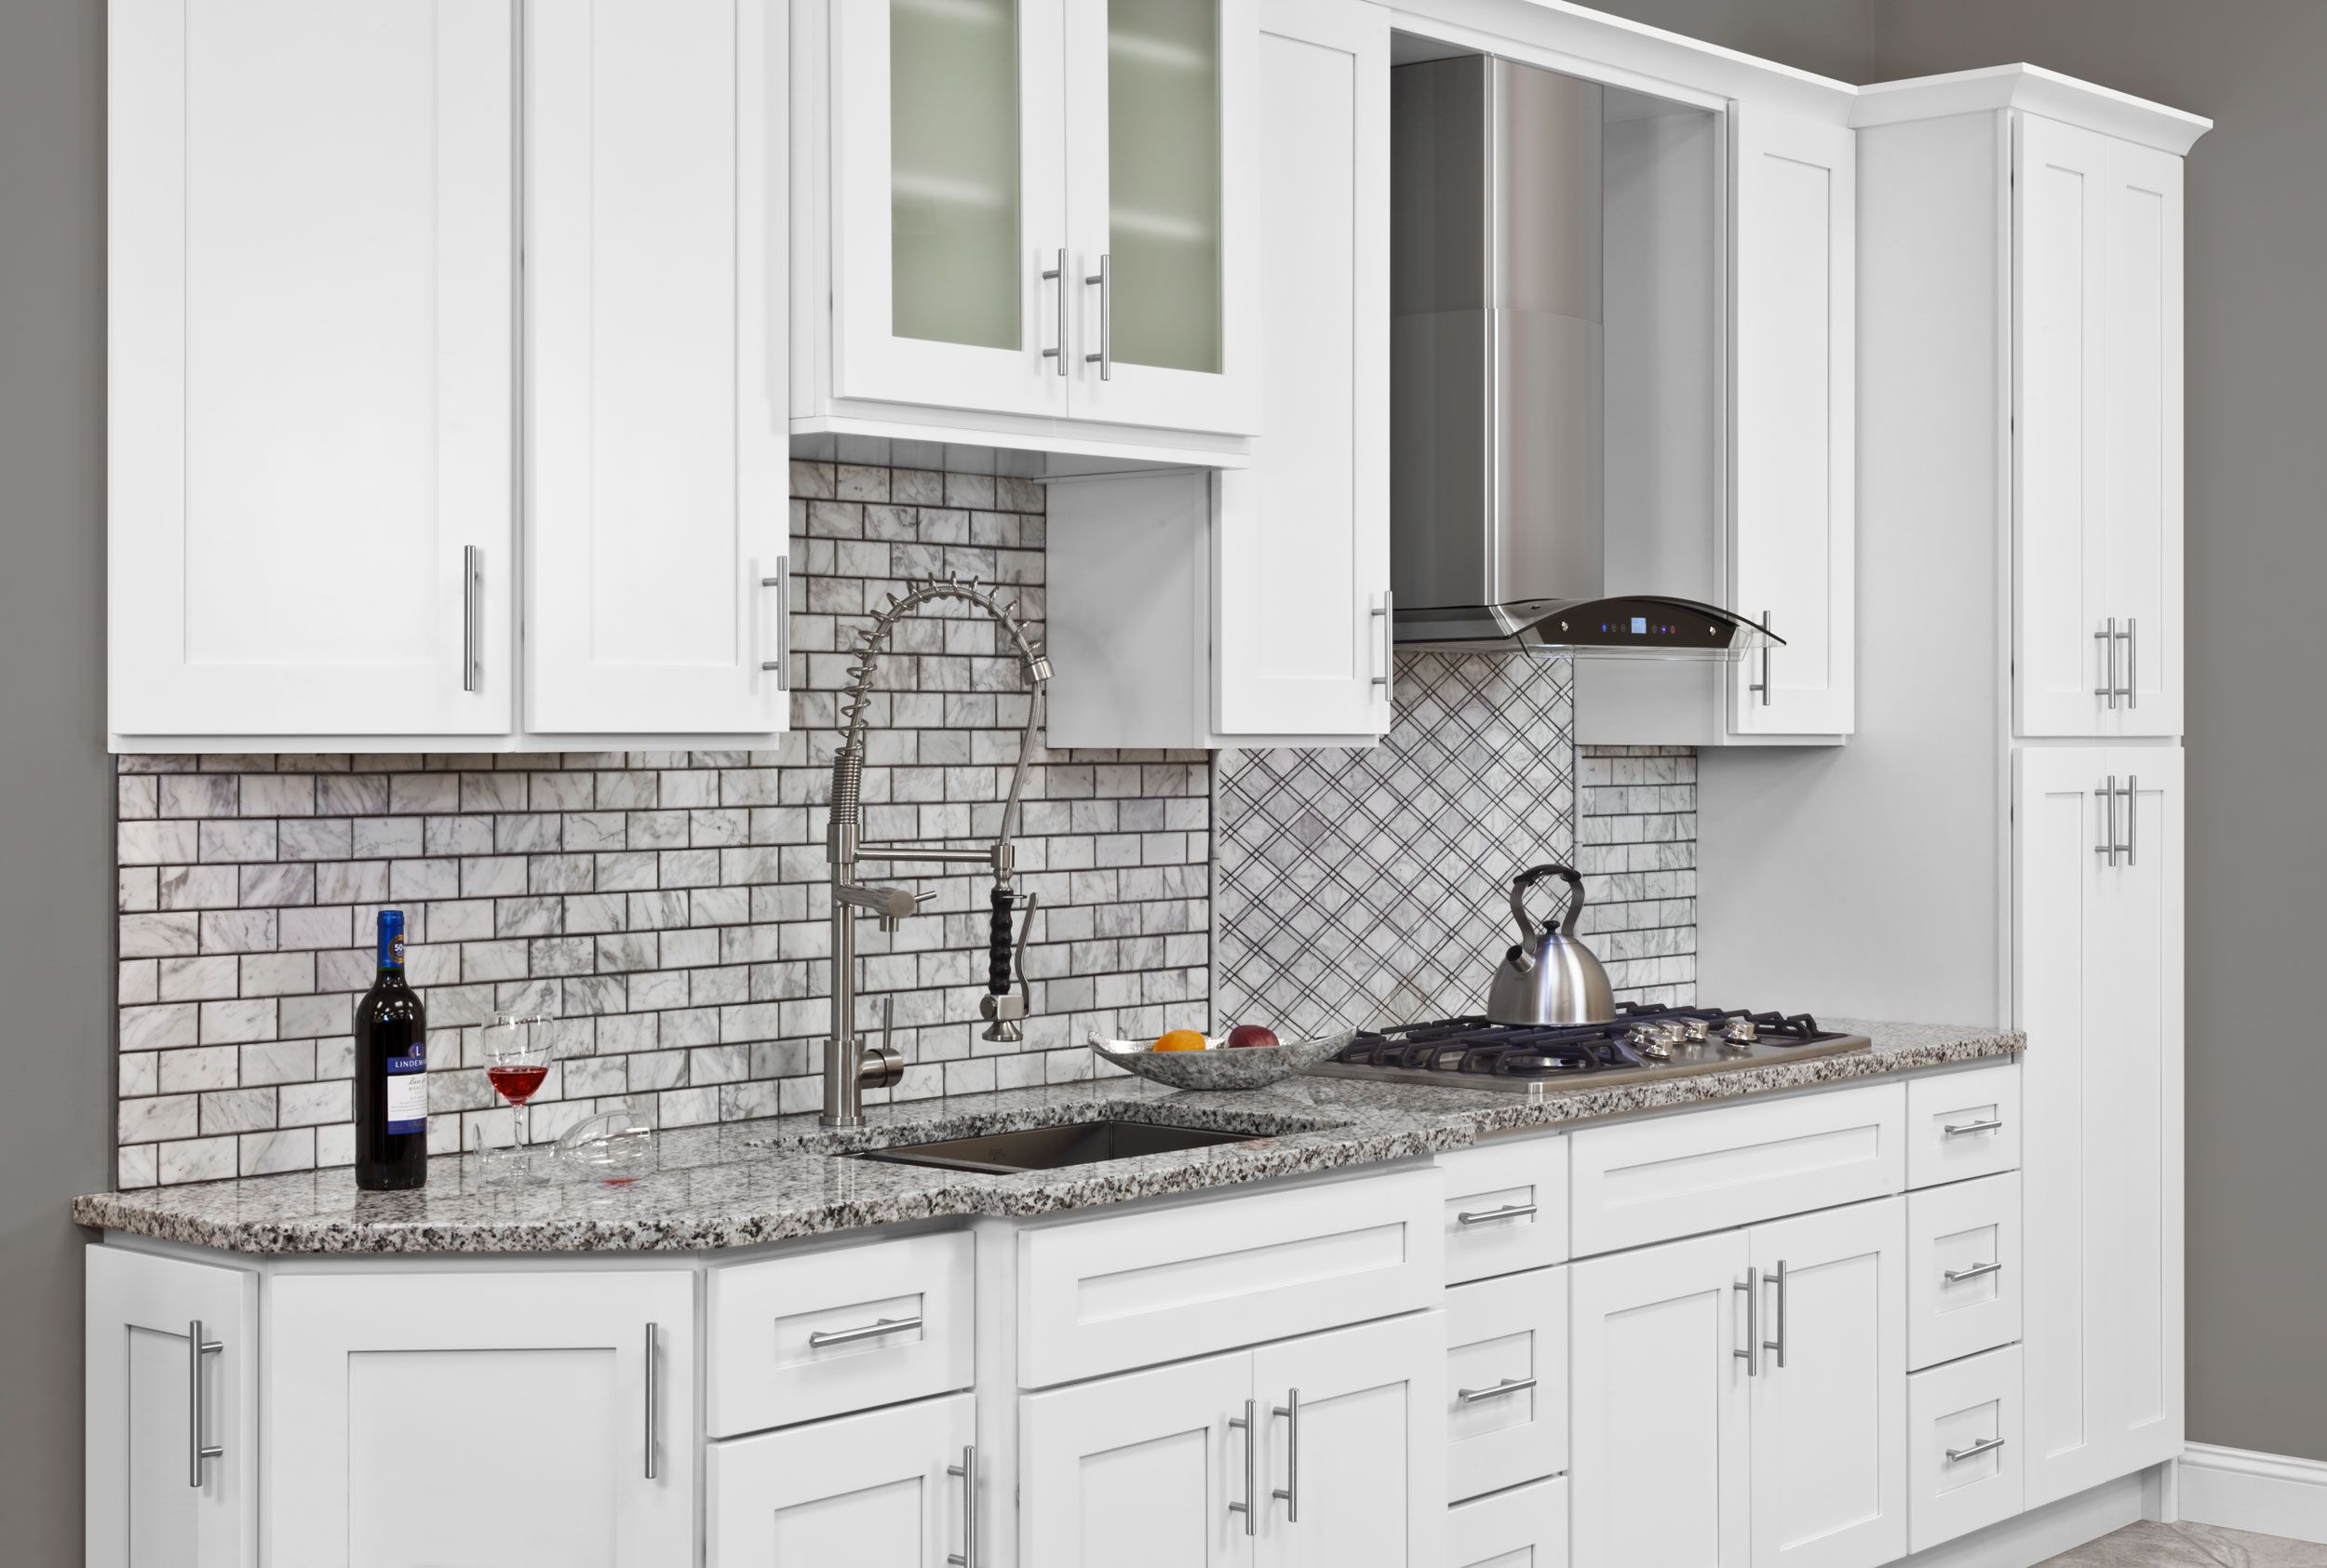 Alpina White Kitchen Kitchen Cabinets White Kitchen Cabinets Steel Kitchen Cabinets